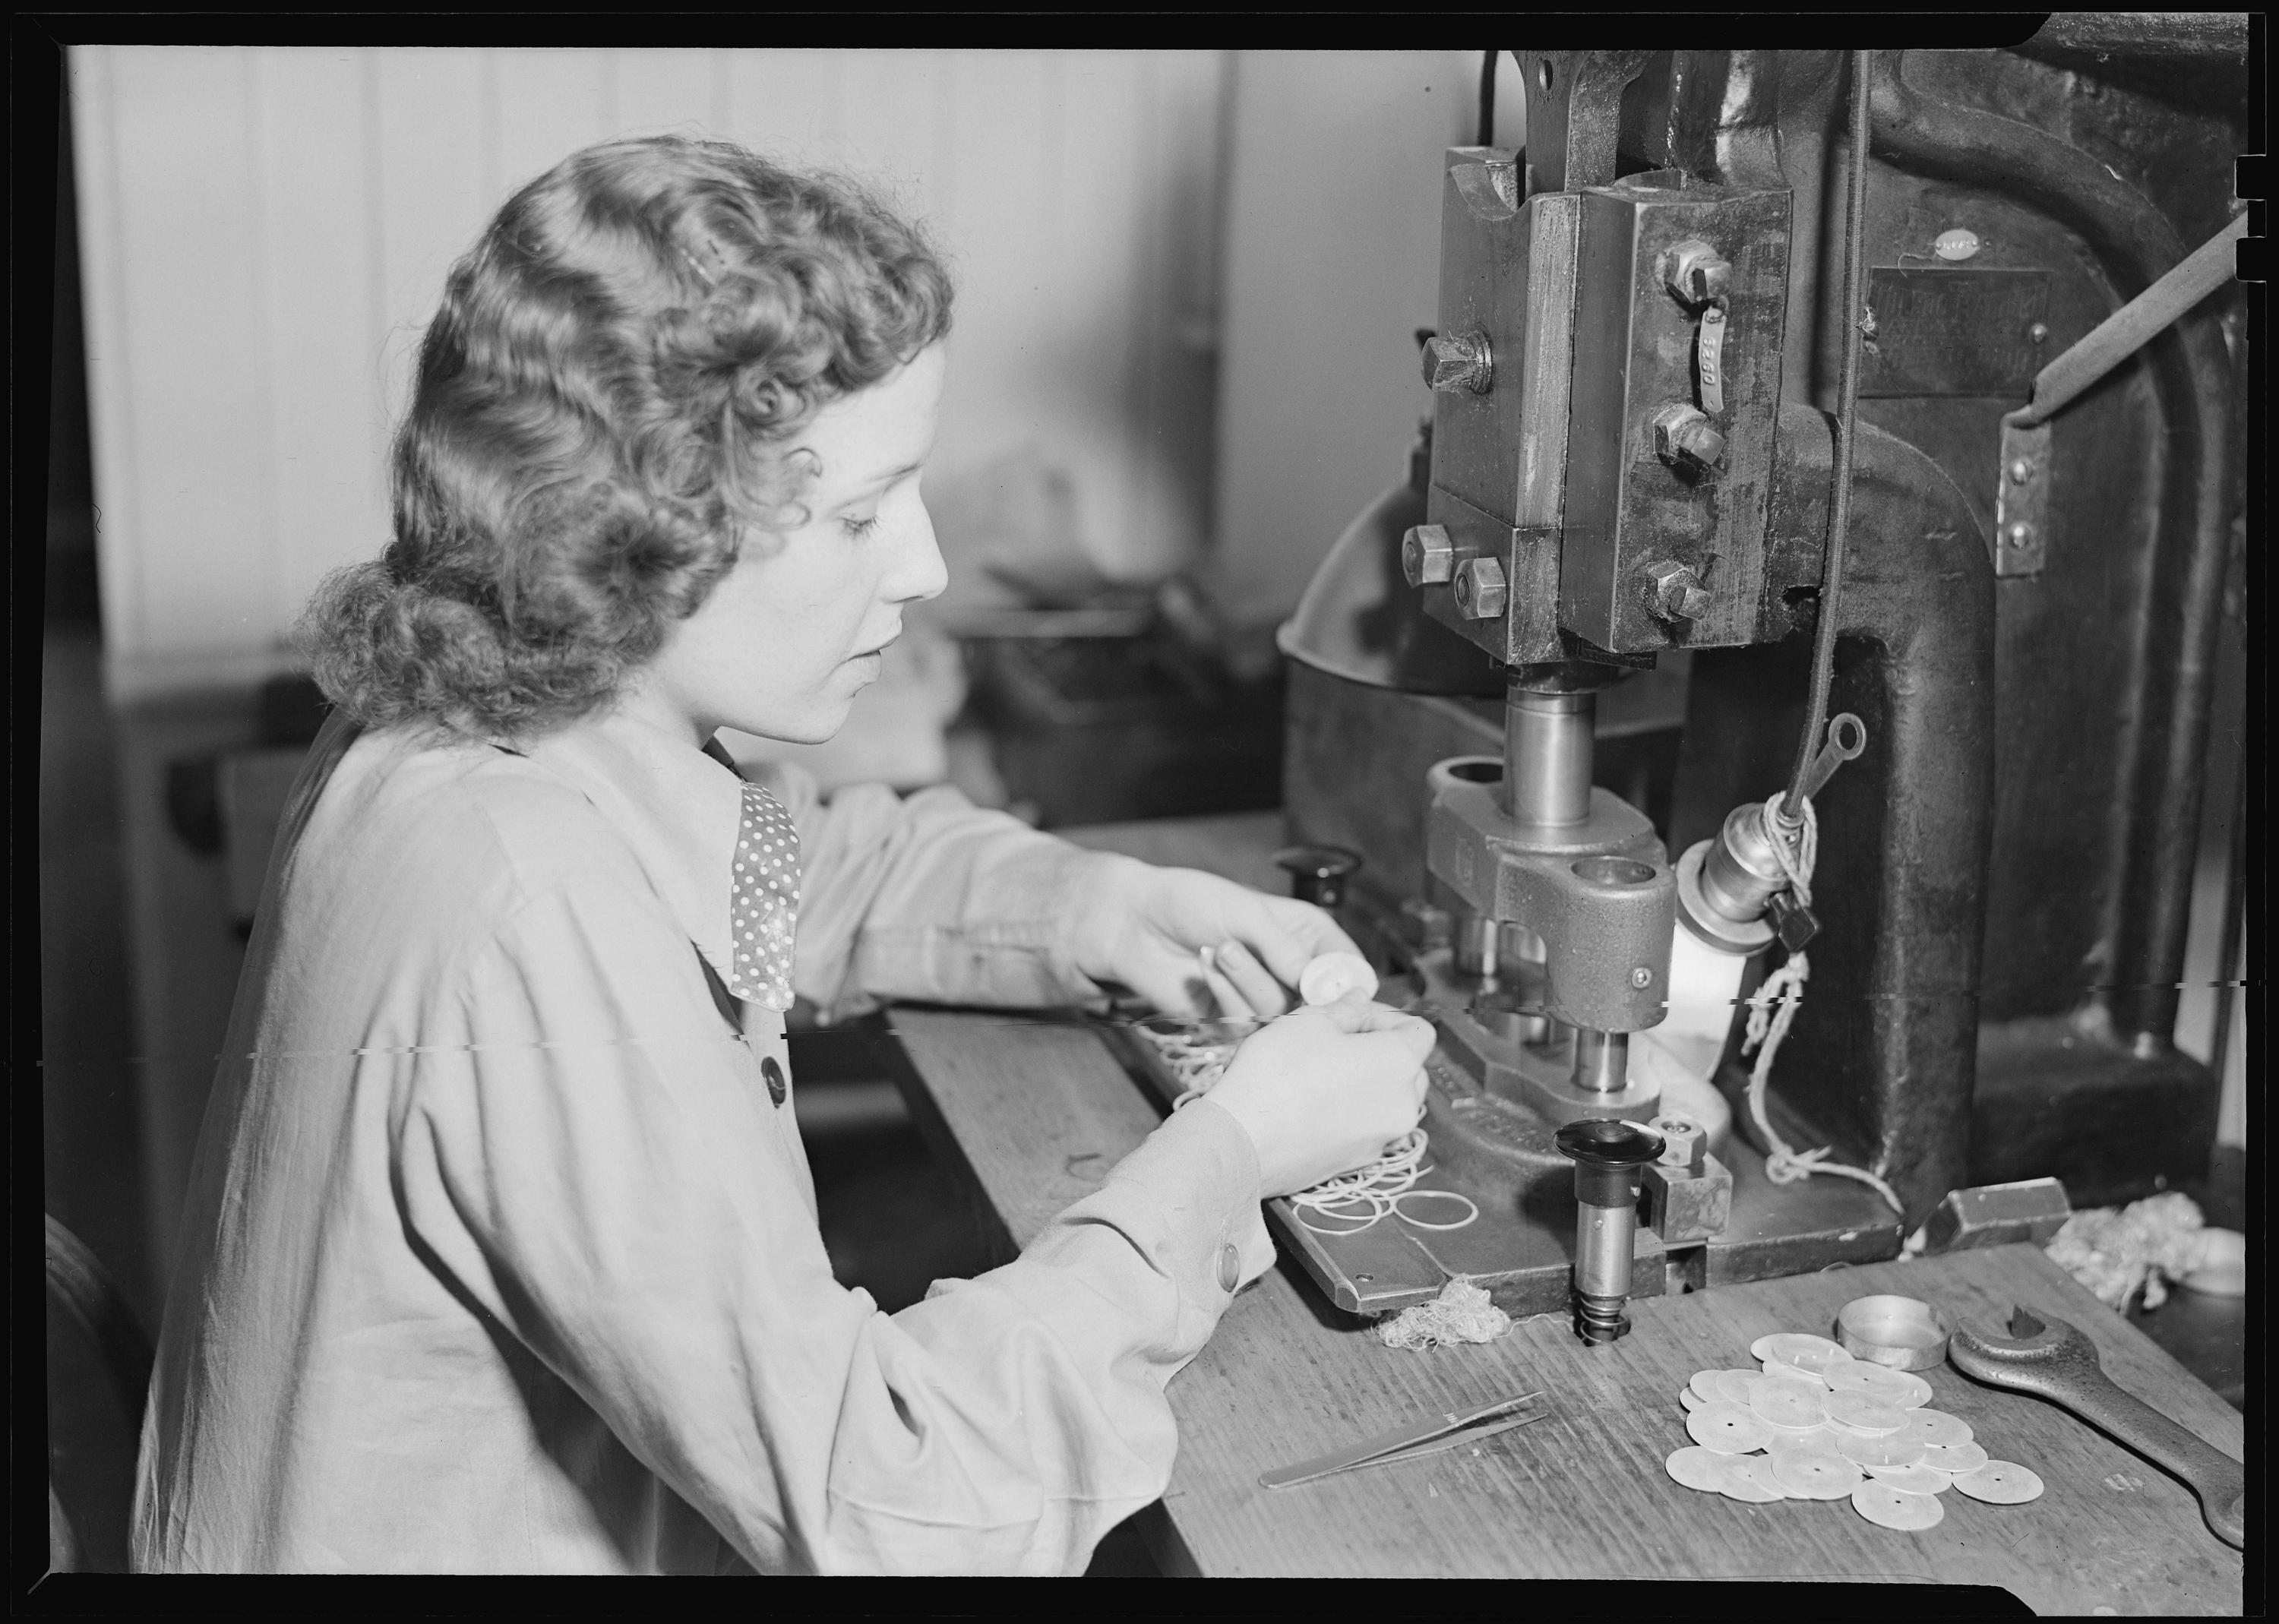 Hamilton Watch. Operation - shaving dial blank - simple machine operation. Note two safety devices on machine, 1936